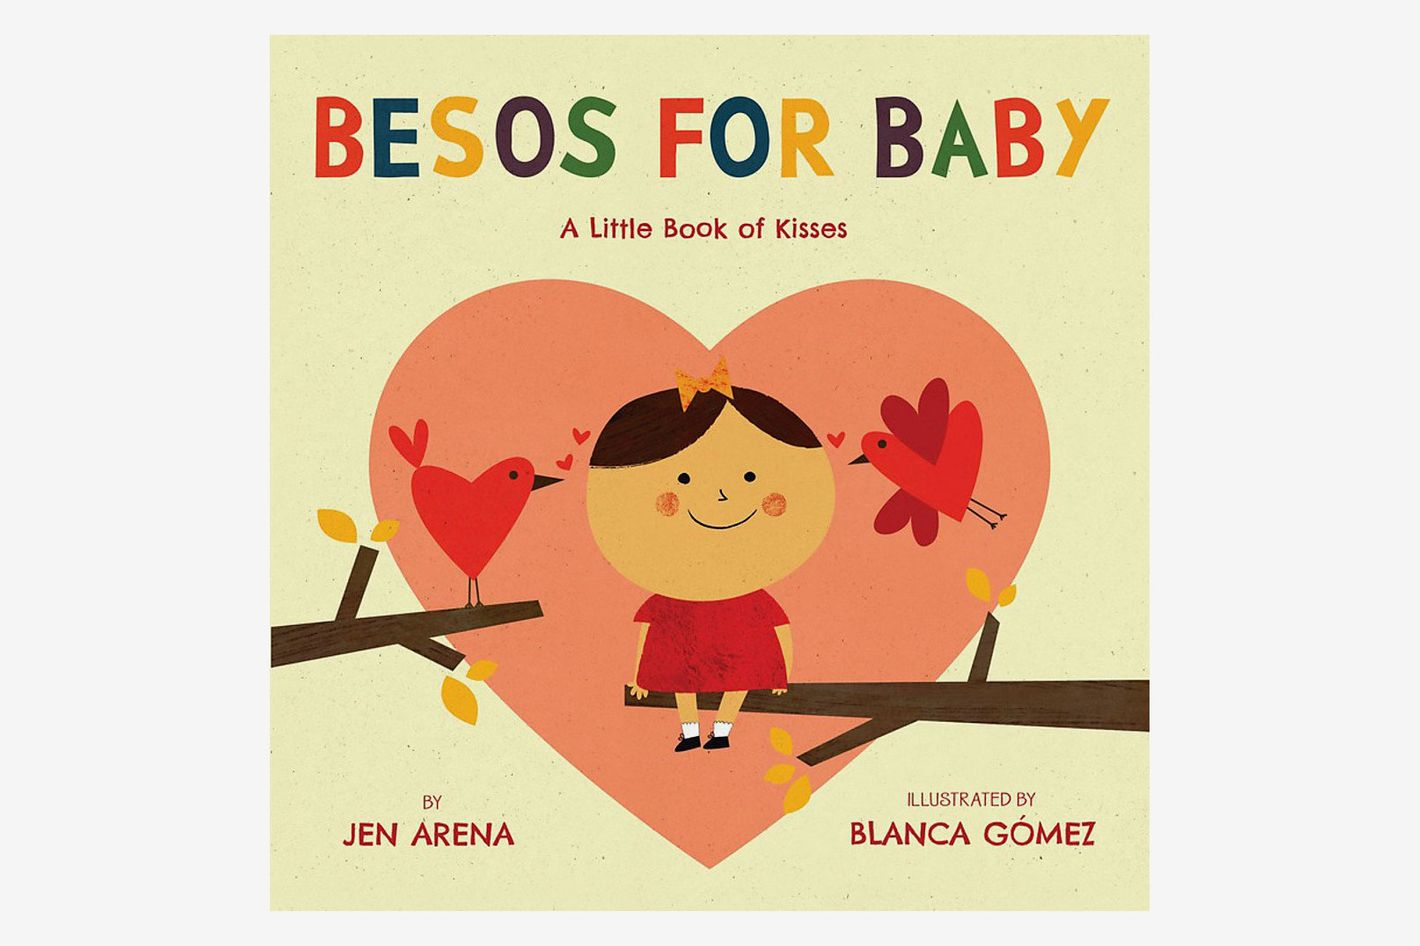 """Besos for Baby: A Little Book of Kisses"" by Jen Arena (Author) and Blanca Gomez (Illustrator)"